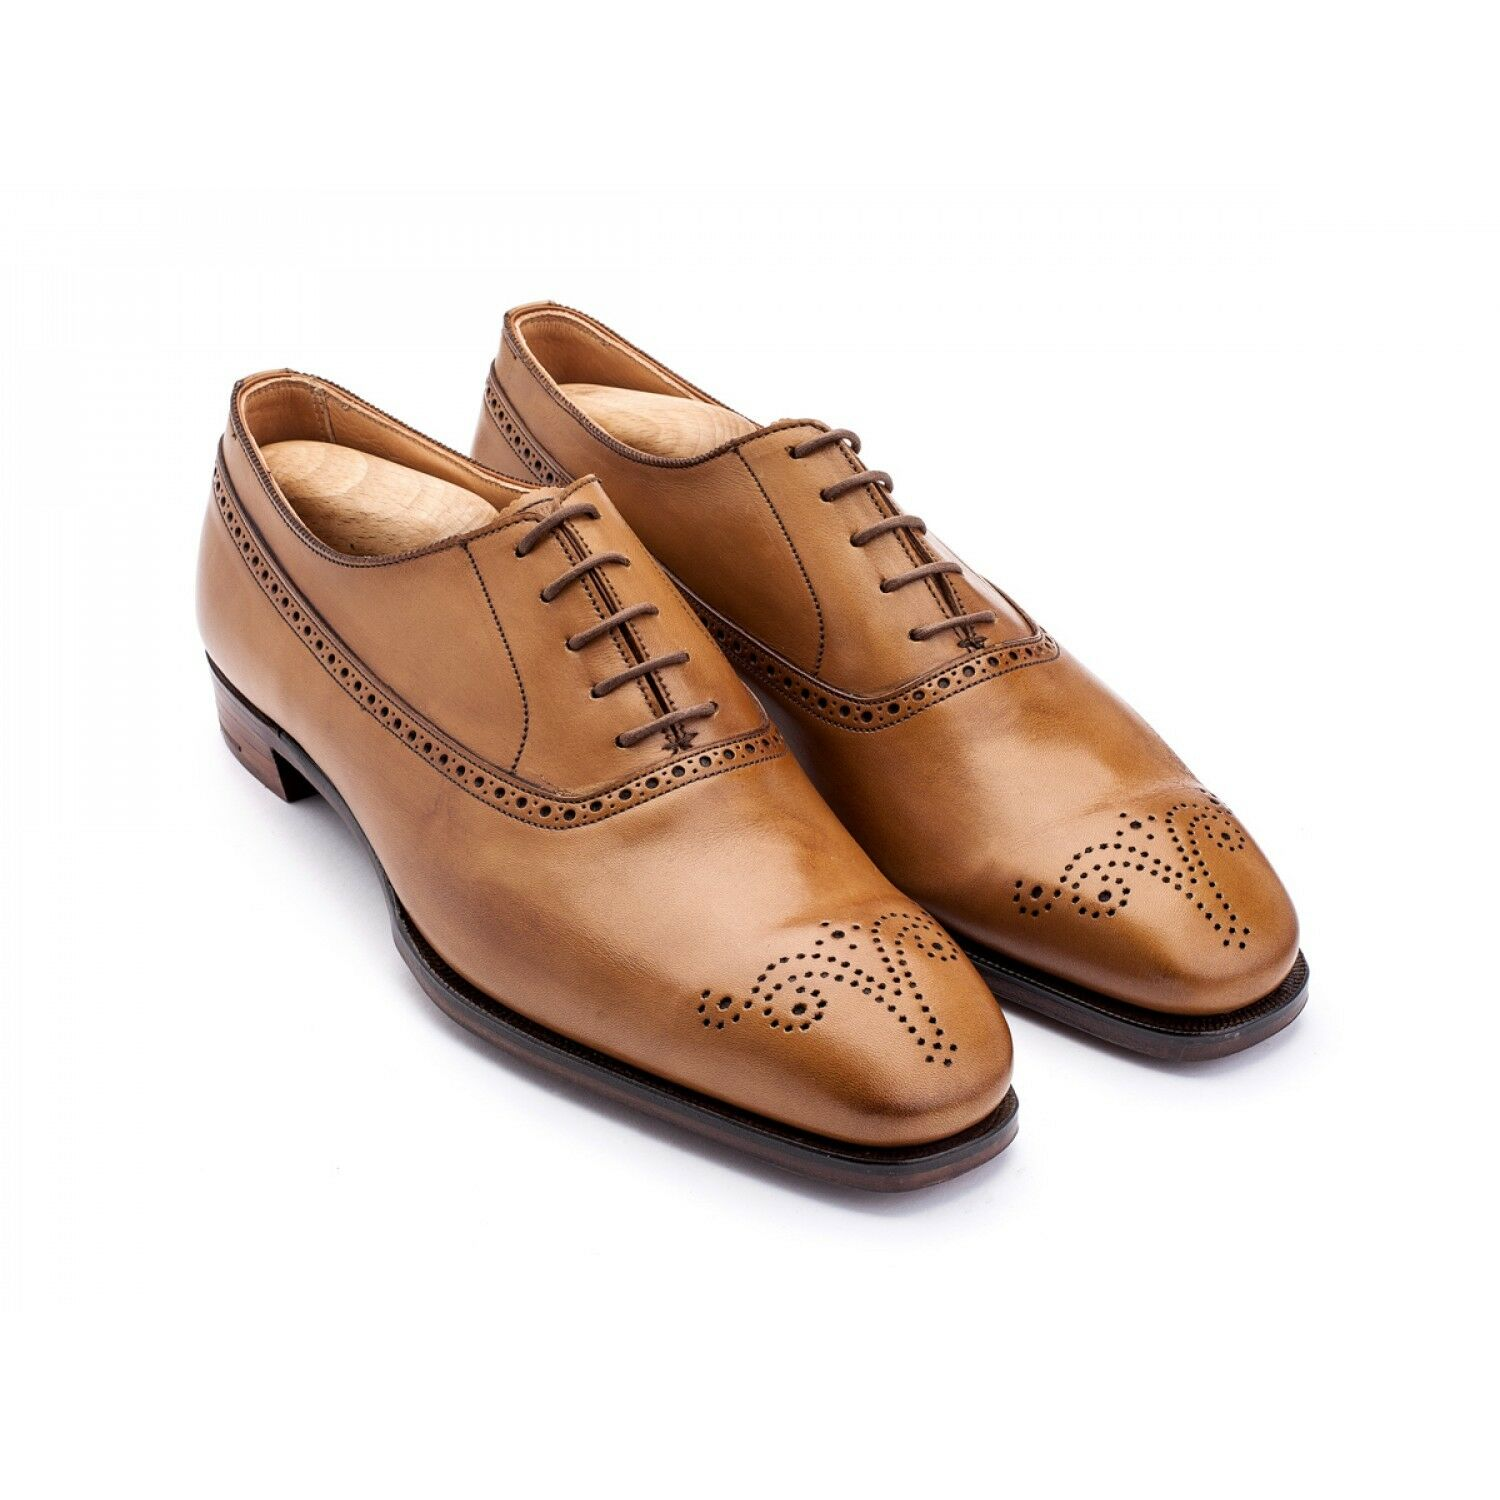 6b363f12bdc0f2 G.J. Cleverley Beige Calf Christian Antique nvearx7269-Formal Shoes ...